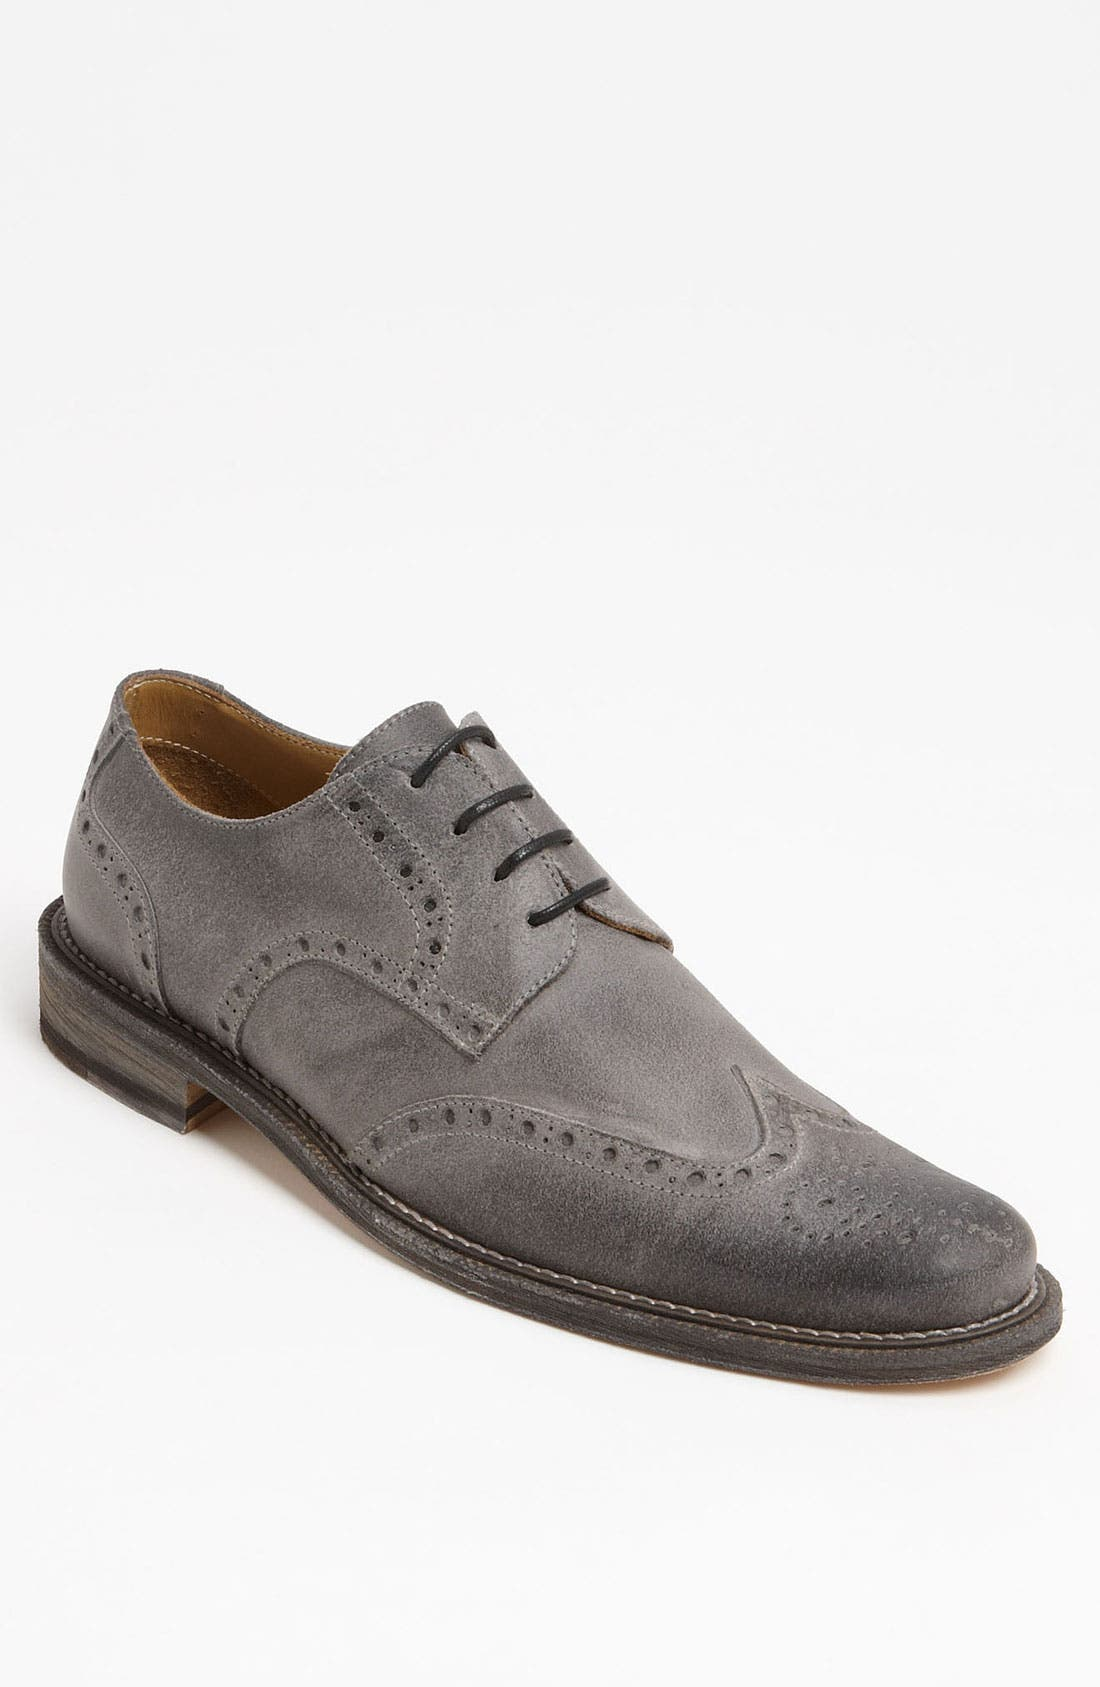 Main Image - Billy Reid 'Savannah' Oxford